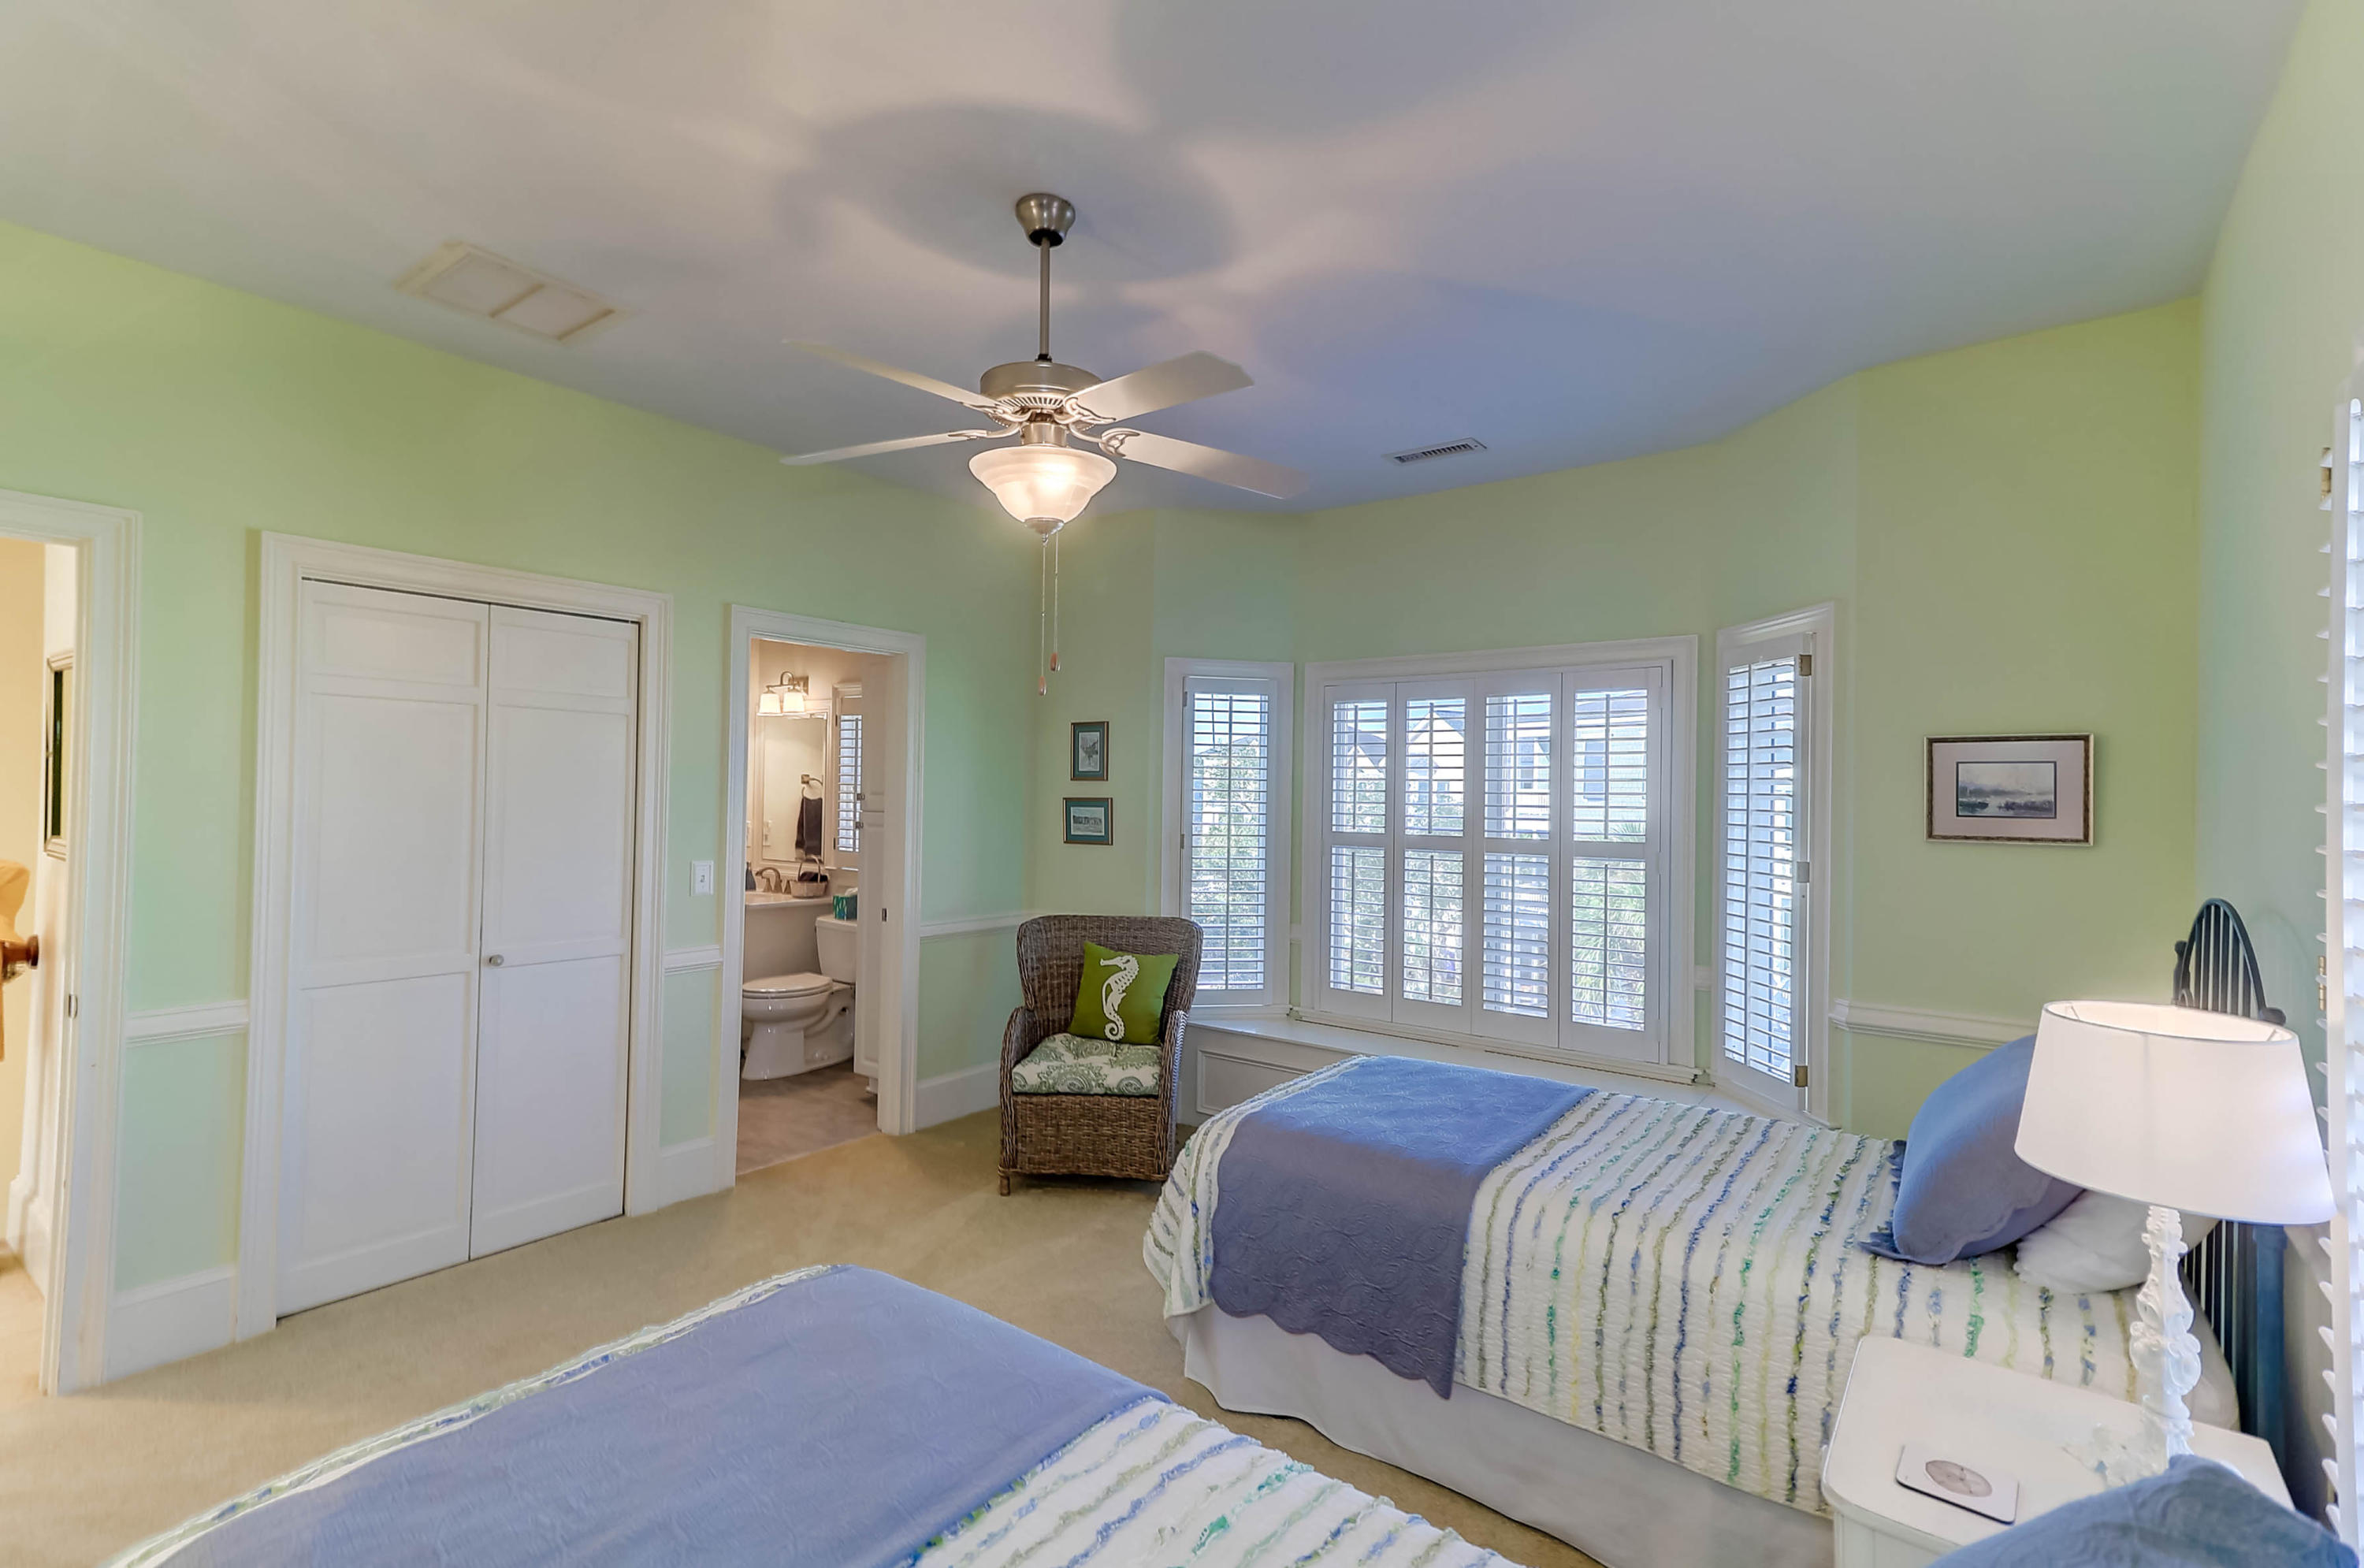 Wild Dunes Homes For Sale - 36 Ocean Point, Isle of Palms, SC - 7